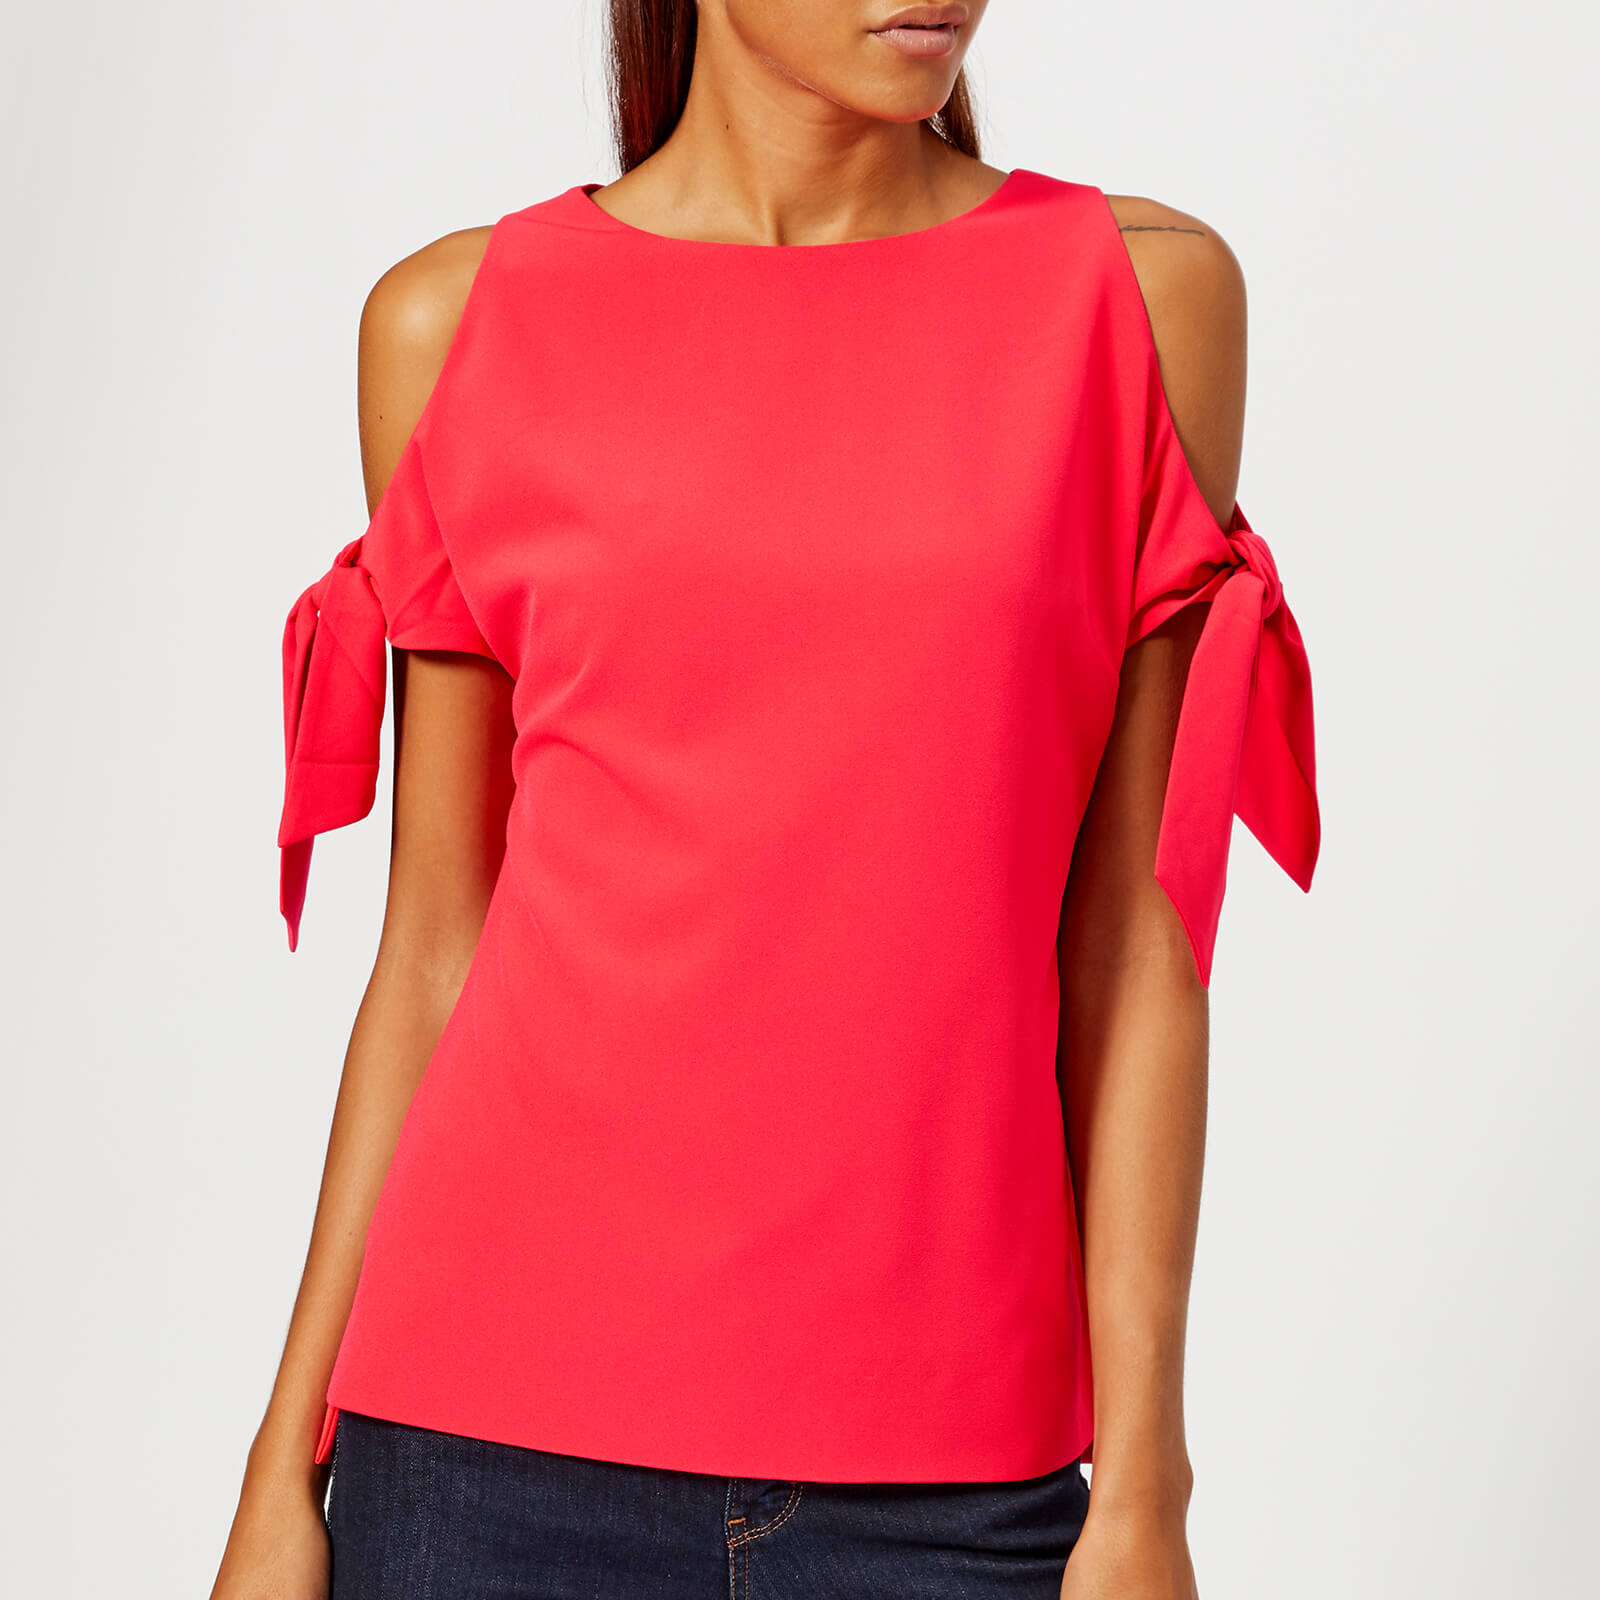 c3b3f0836cb96 Ted Baker Women s Yaele Tie Sleeve Cold Shoulder Top - Bright Red ...